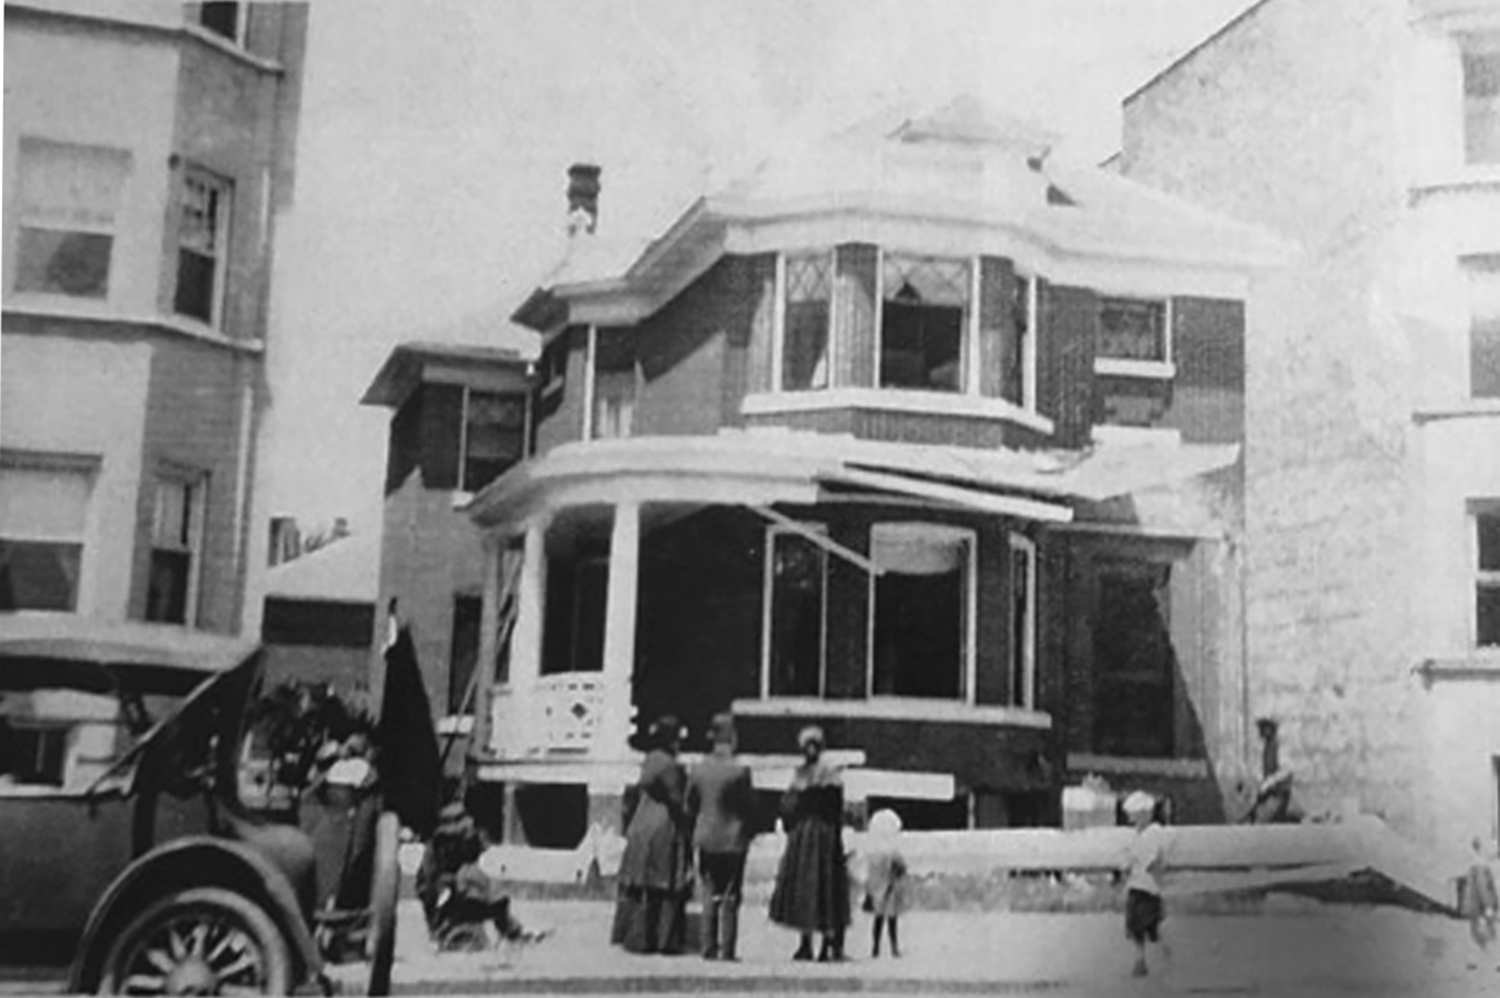 Chicago banker Jesse Binga's house after a bomb exploded on his front porch. This photo isn't dated but likely was from either the summer of 1920 or 1921 — Binga's house was bombed and damaged both of those summers.